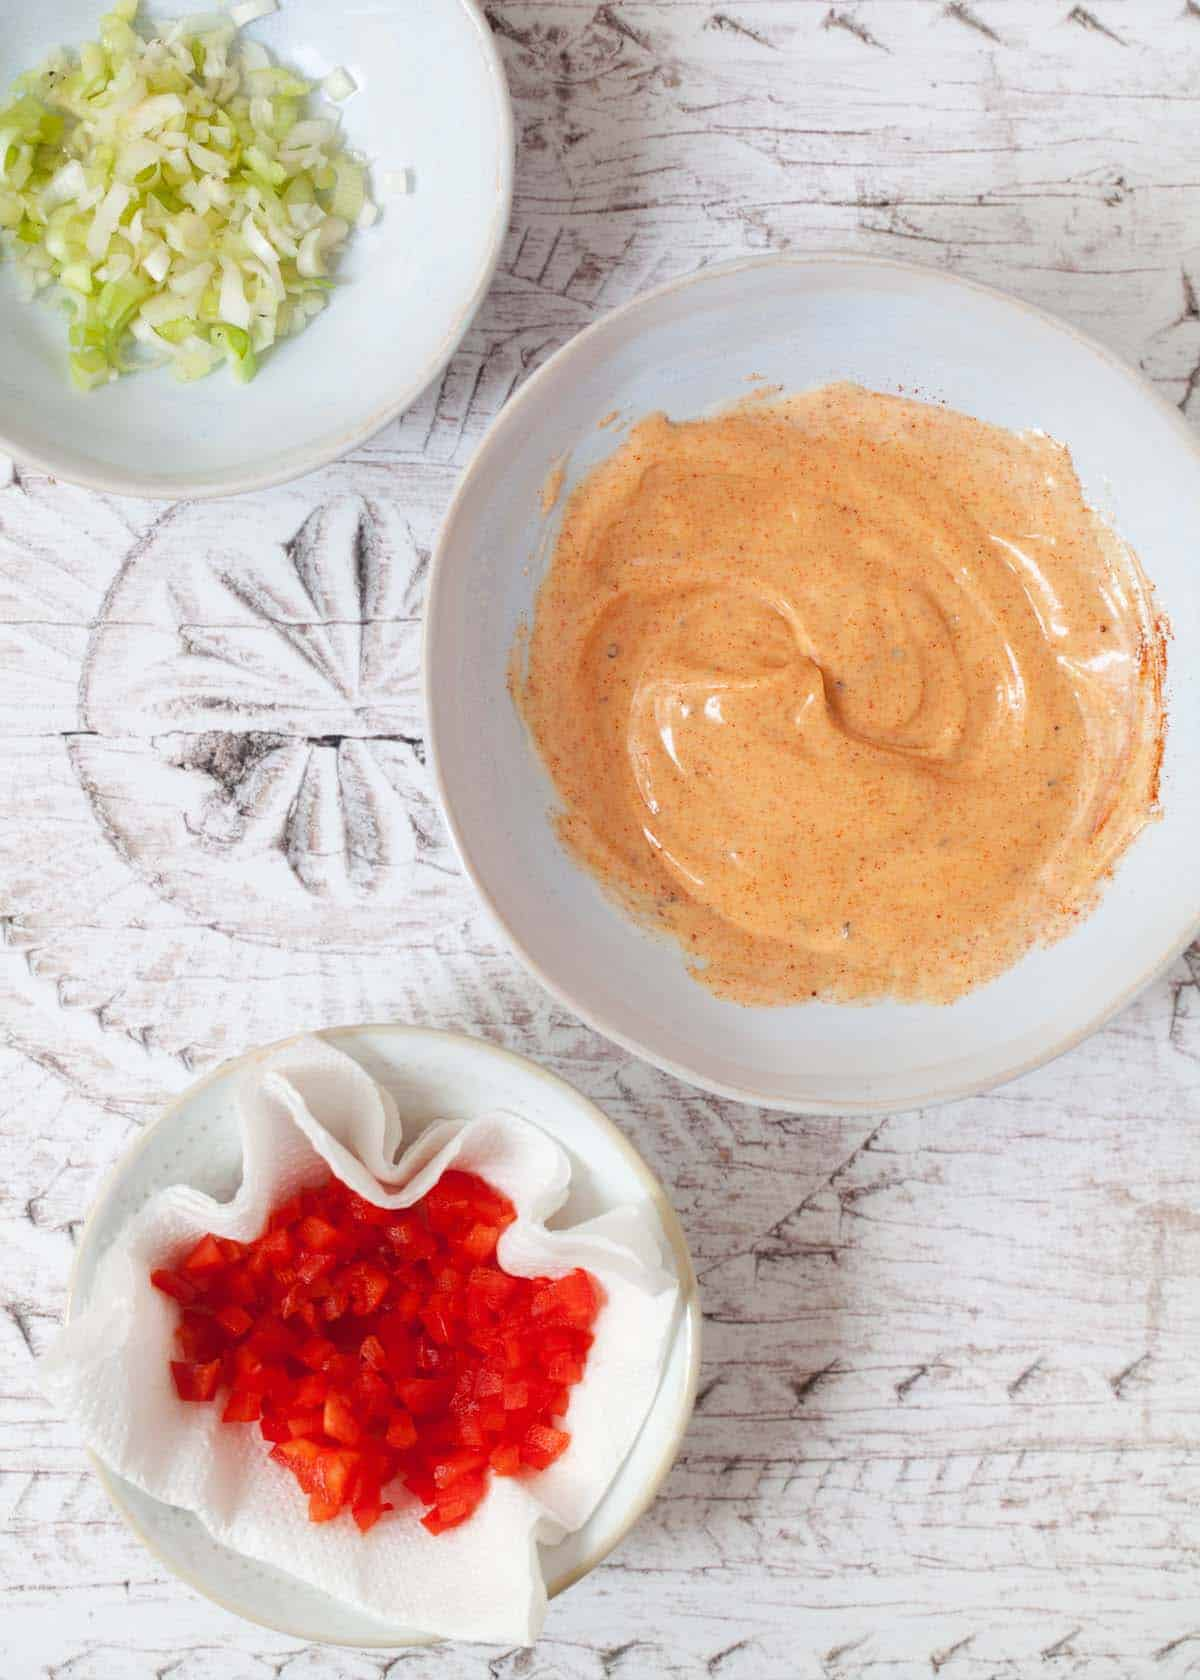 Paprika mayonnaise mixed in a shallow bowl with onion and red pepper alongside